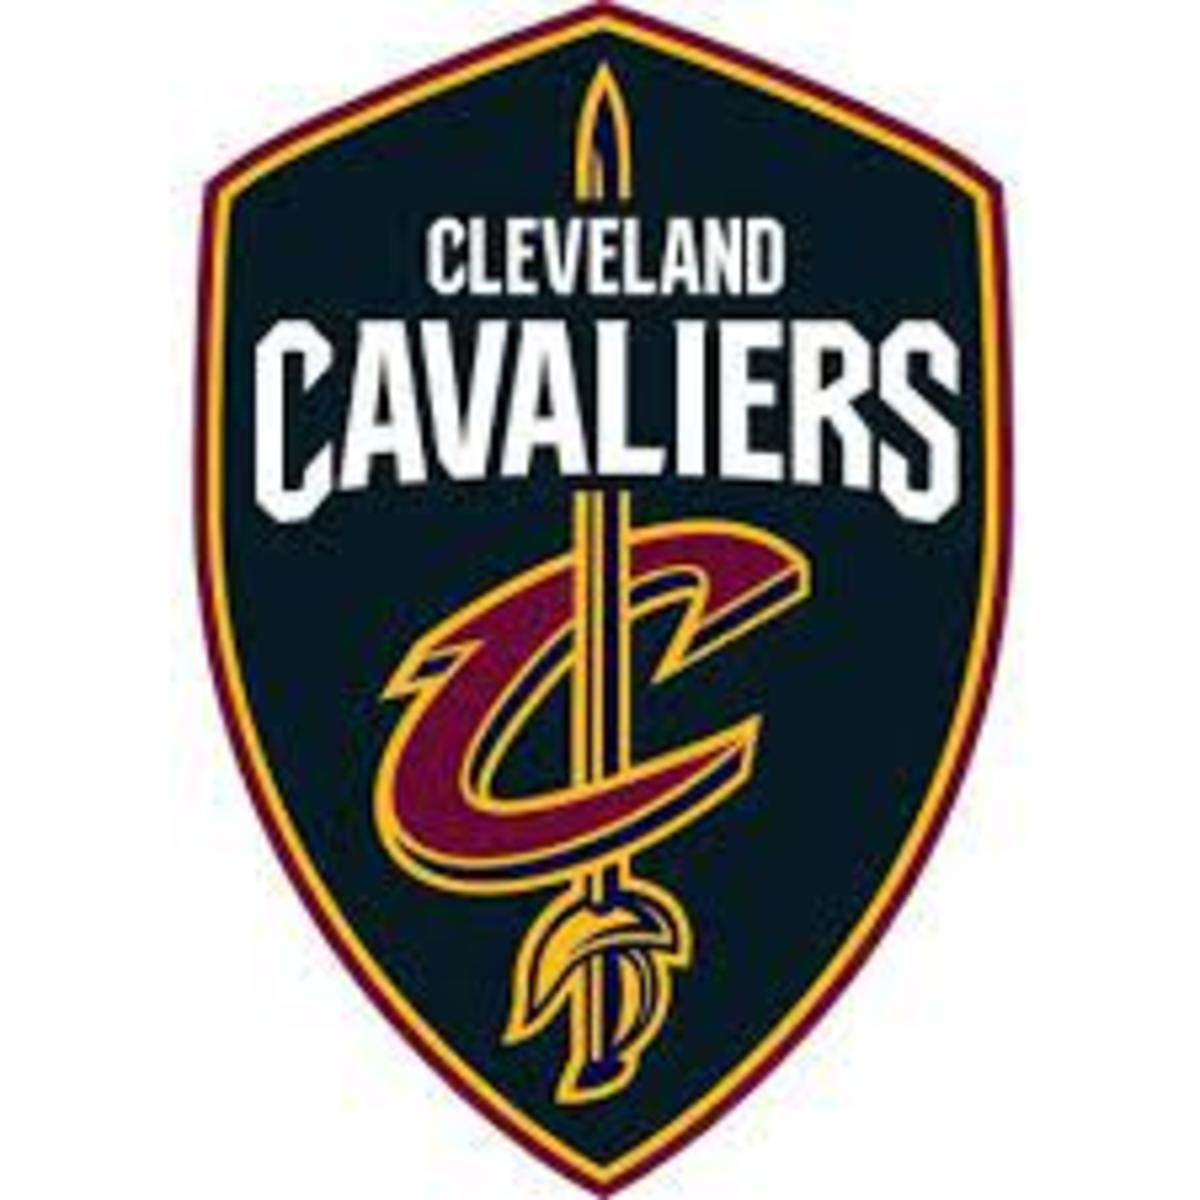 The Cavaliers finished 22-50 with the 13th best record in the East.